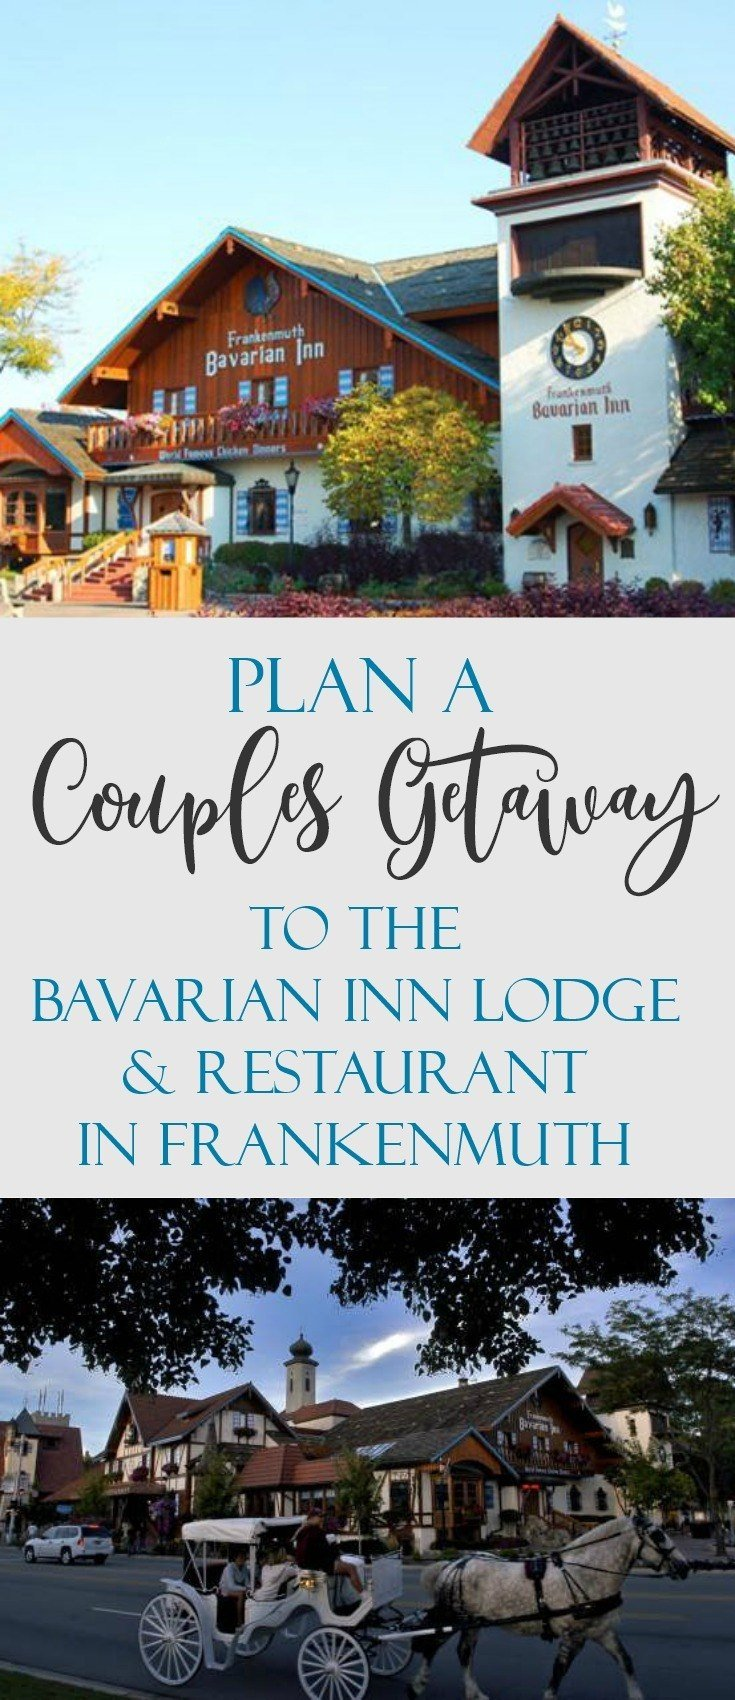 Plan a Couples Getaway to the Bavarian Inn Lodge and Restaurant in Frankenmuth, Michigan.